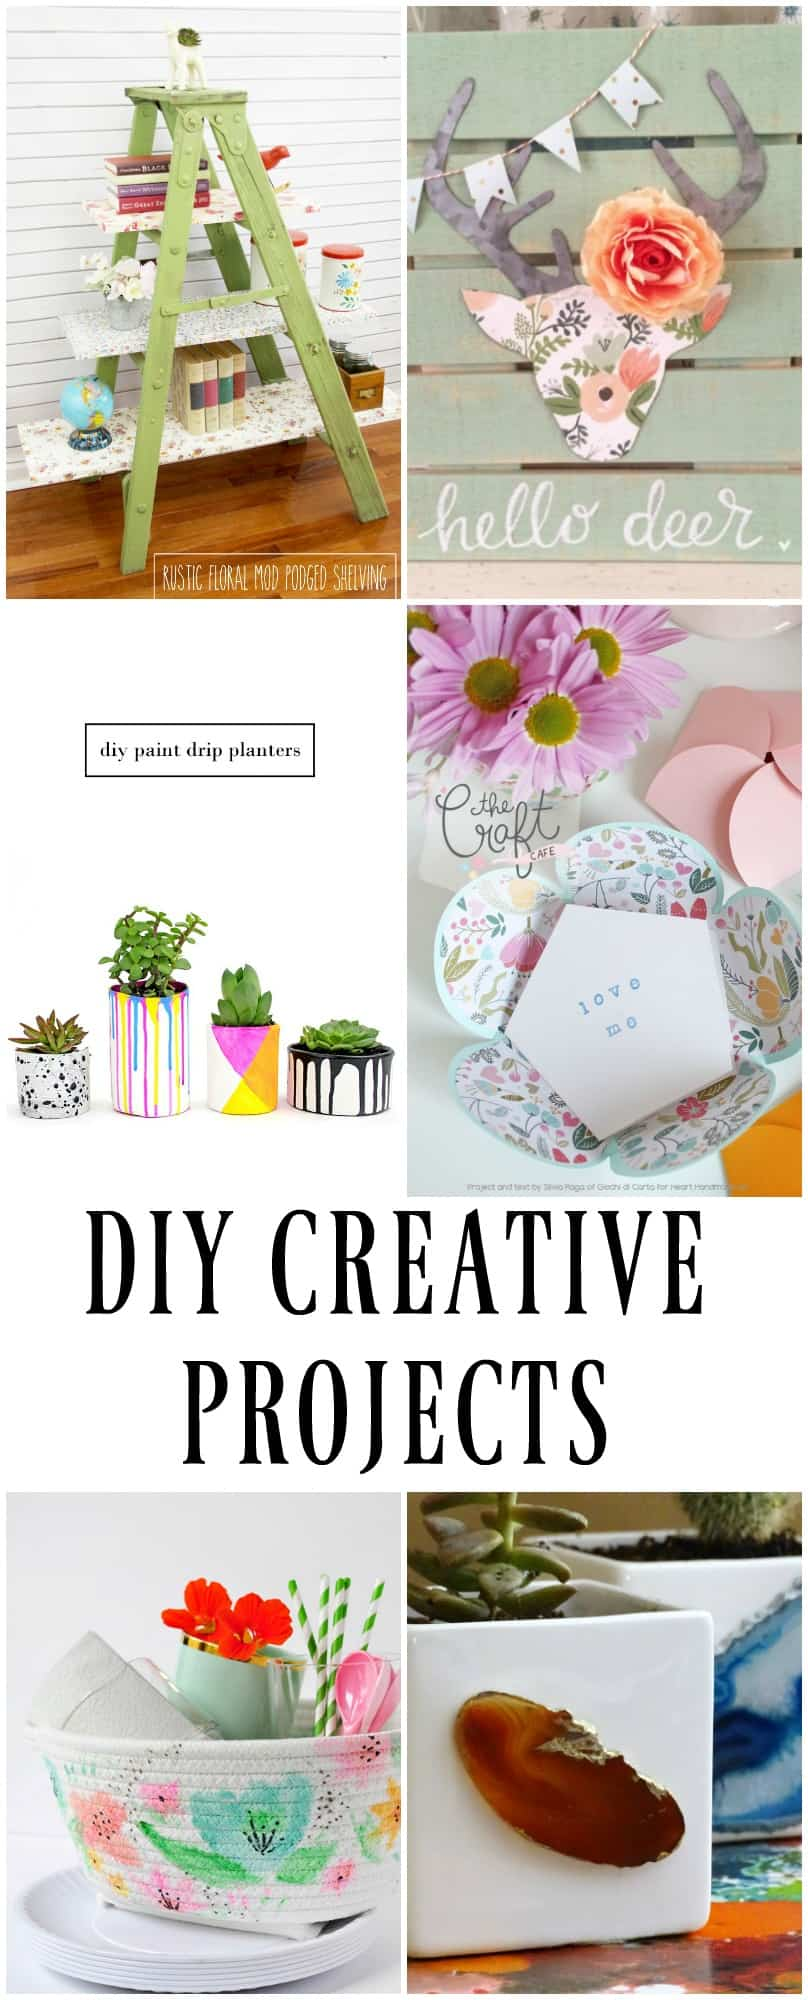 DIY CREATIVE PROJECTS